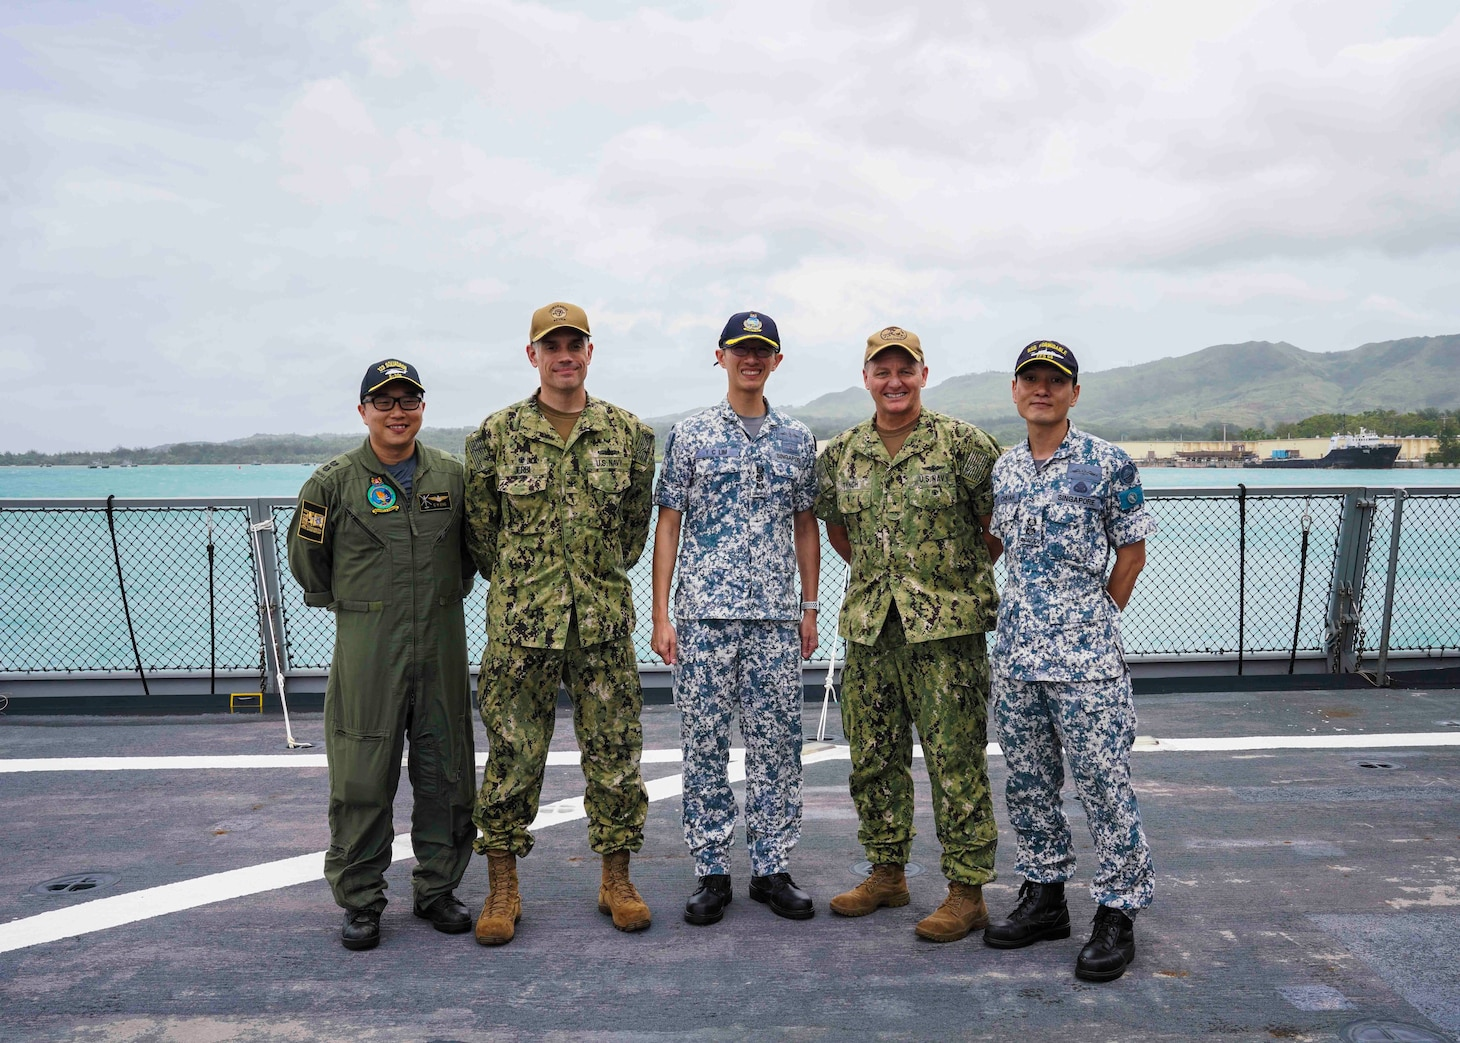 NAVAL BASE GUAM (Oct. 8, 2019) U.S. and Republic of Singapore Navy (RSN) leaders pose for a photo on the flight deck of RSN frigate RSS Formidable (FFS 68) following a visit and tour of the ship in support of Pacific Griffin 2019. Pacific Griffin is a biennial exercise conducted in the waters near Guam aimed at enhancing combined proficiency at sea while strengthening relationships between the U.S. and Republic of Singapore navies.